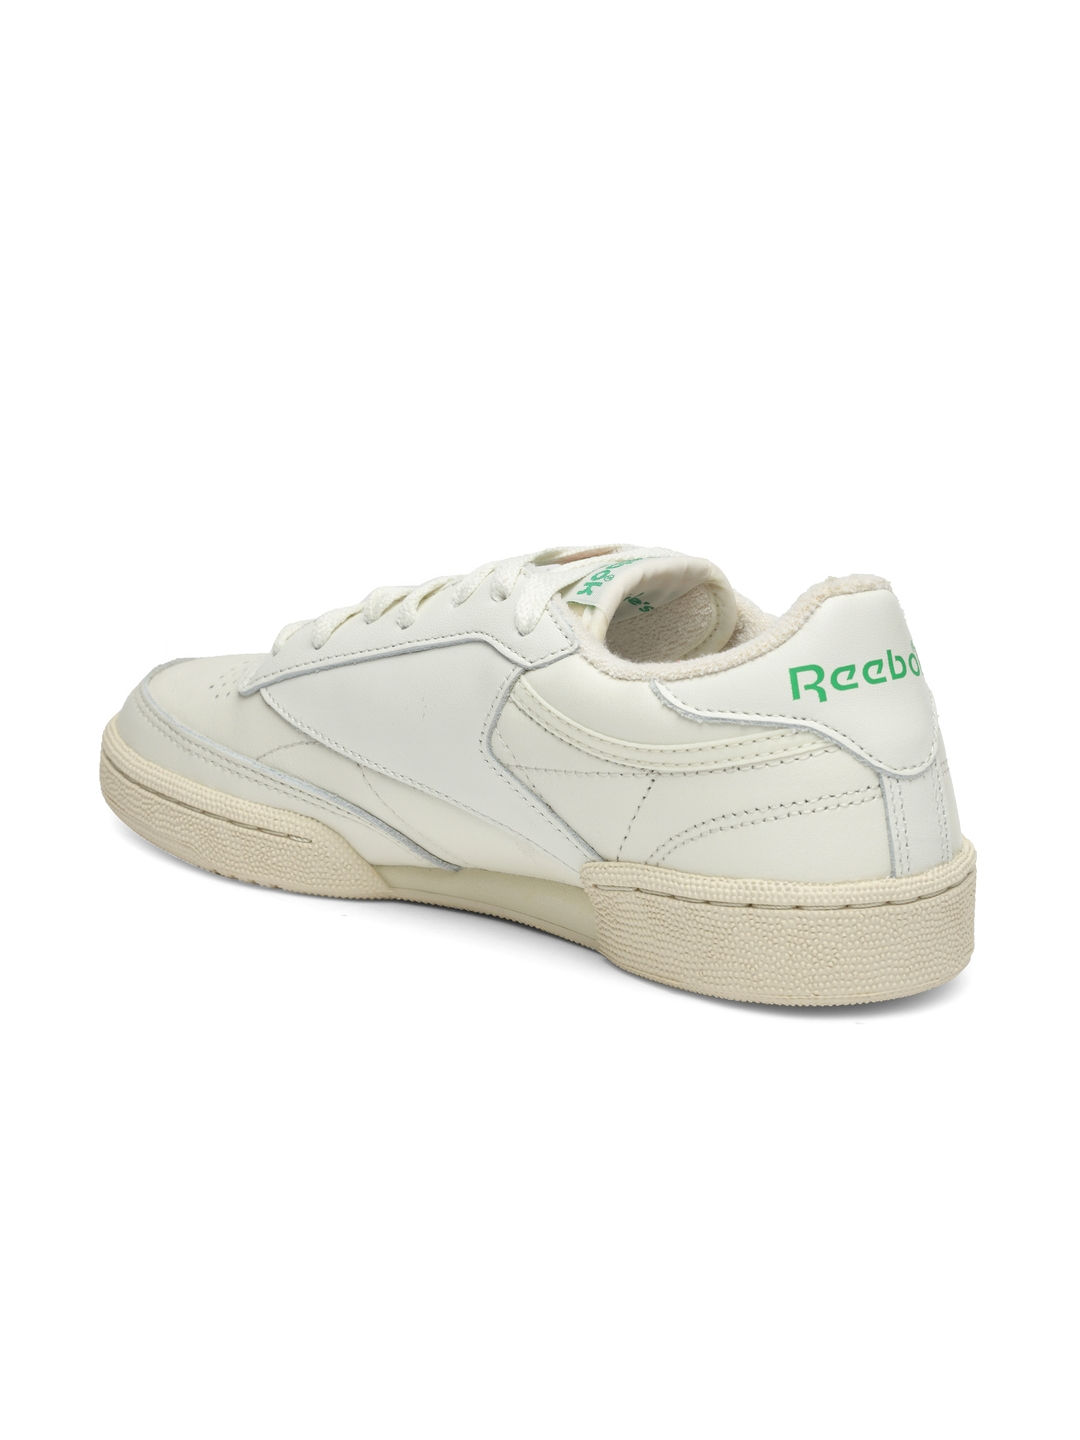 Reebok Classic Women Off-White Club C 85 Vintage Leather Sneakers 62d461a53